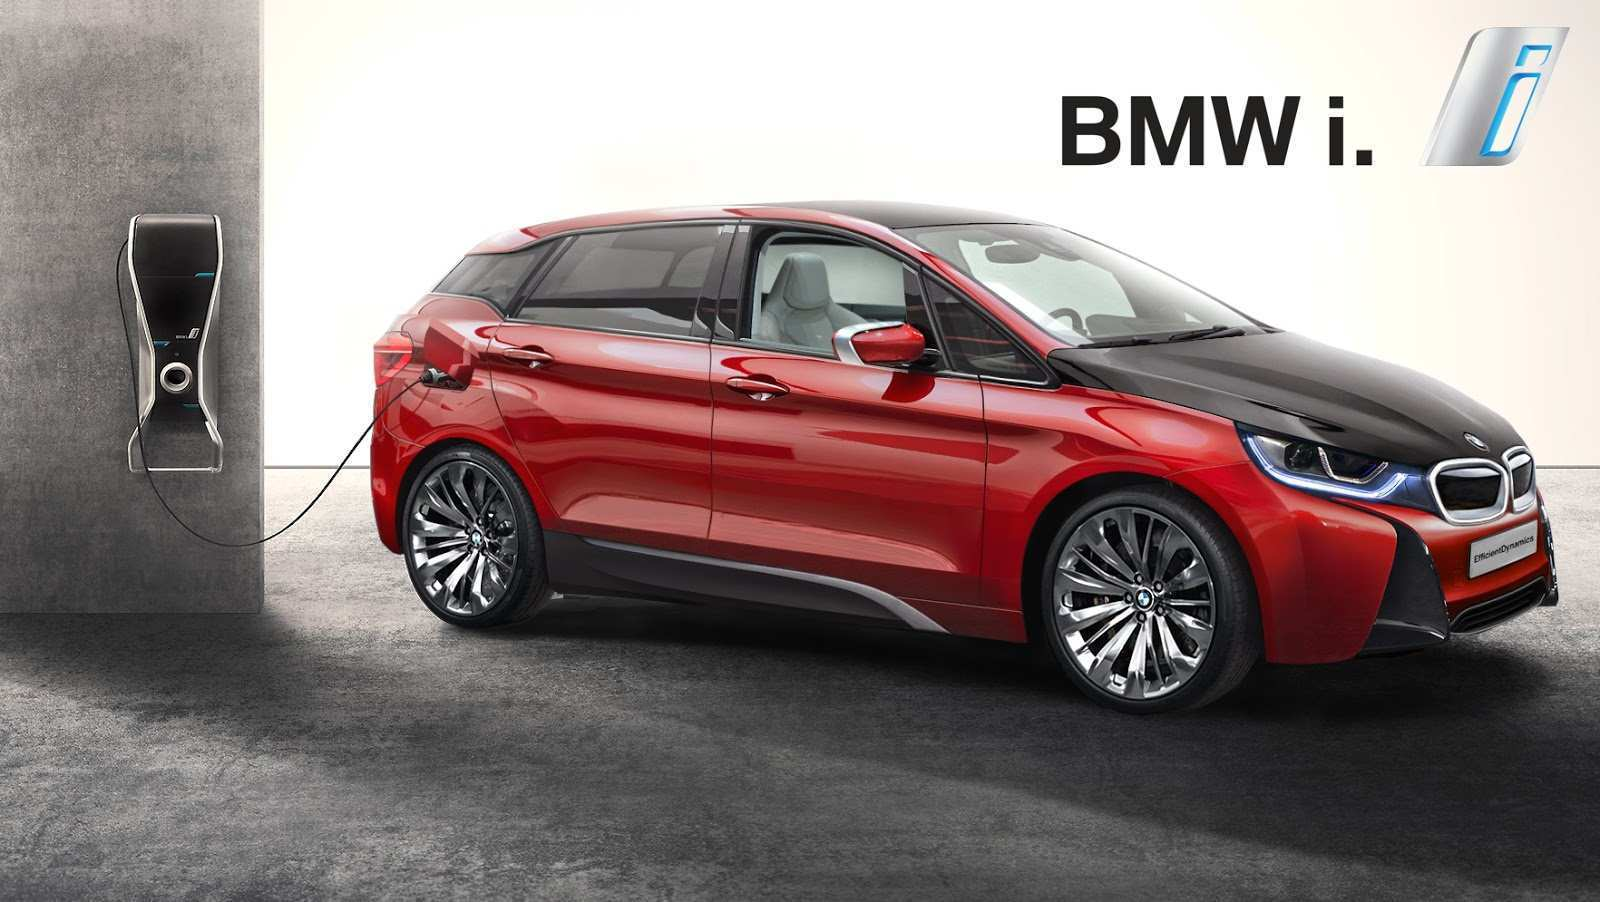 43 New Bmw Elbil 2020 Specs and Review for Bmw Elbil 2020